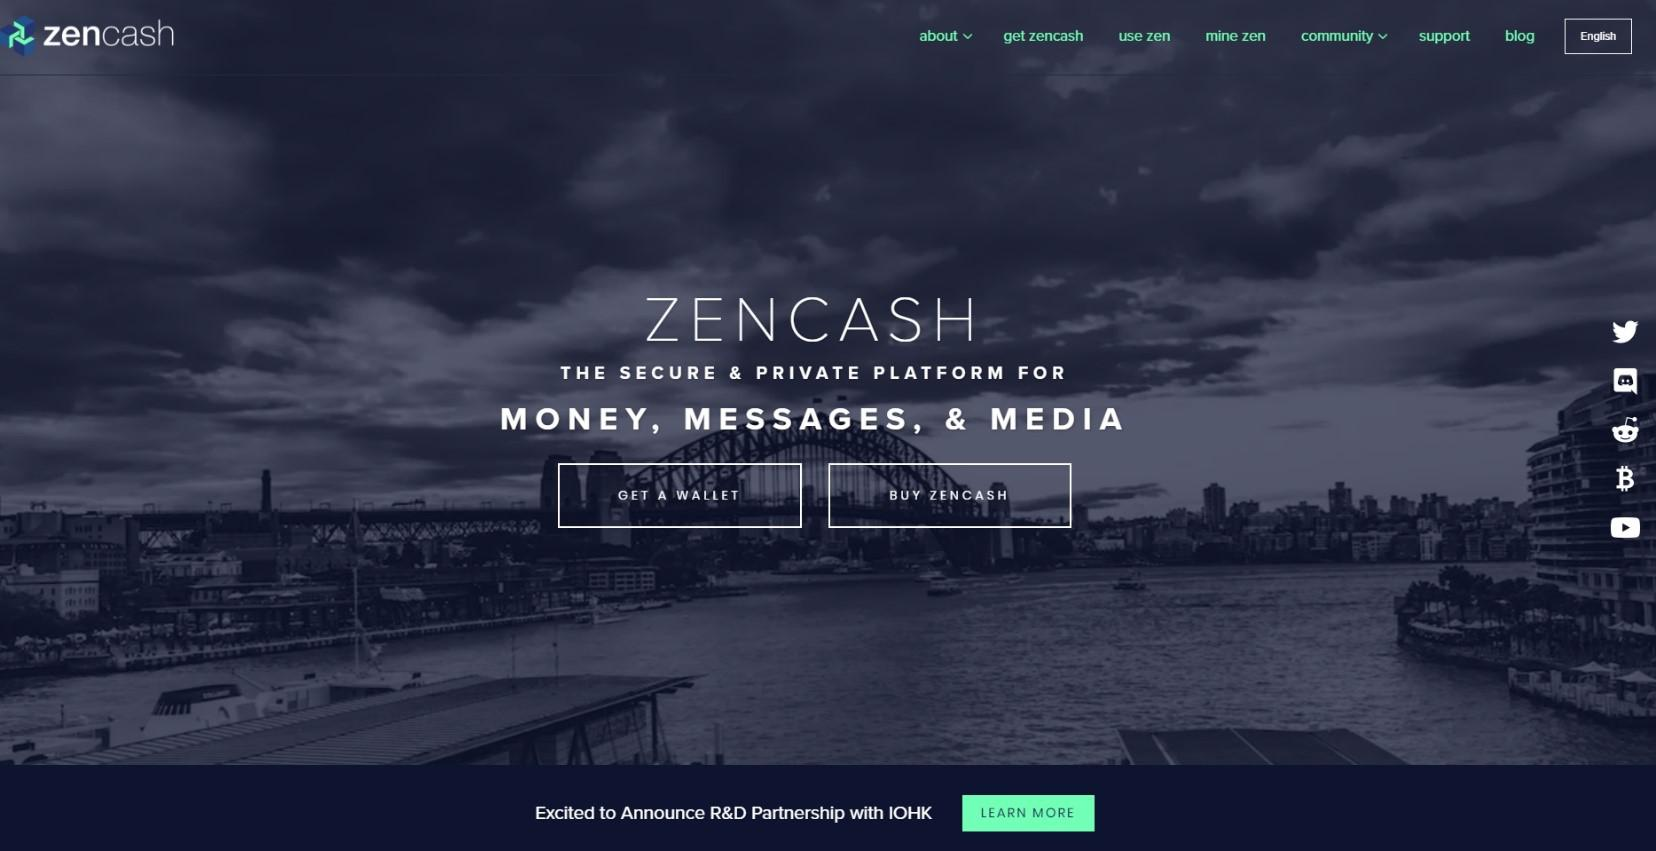 Zencash Website